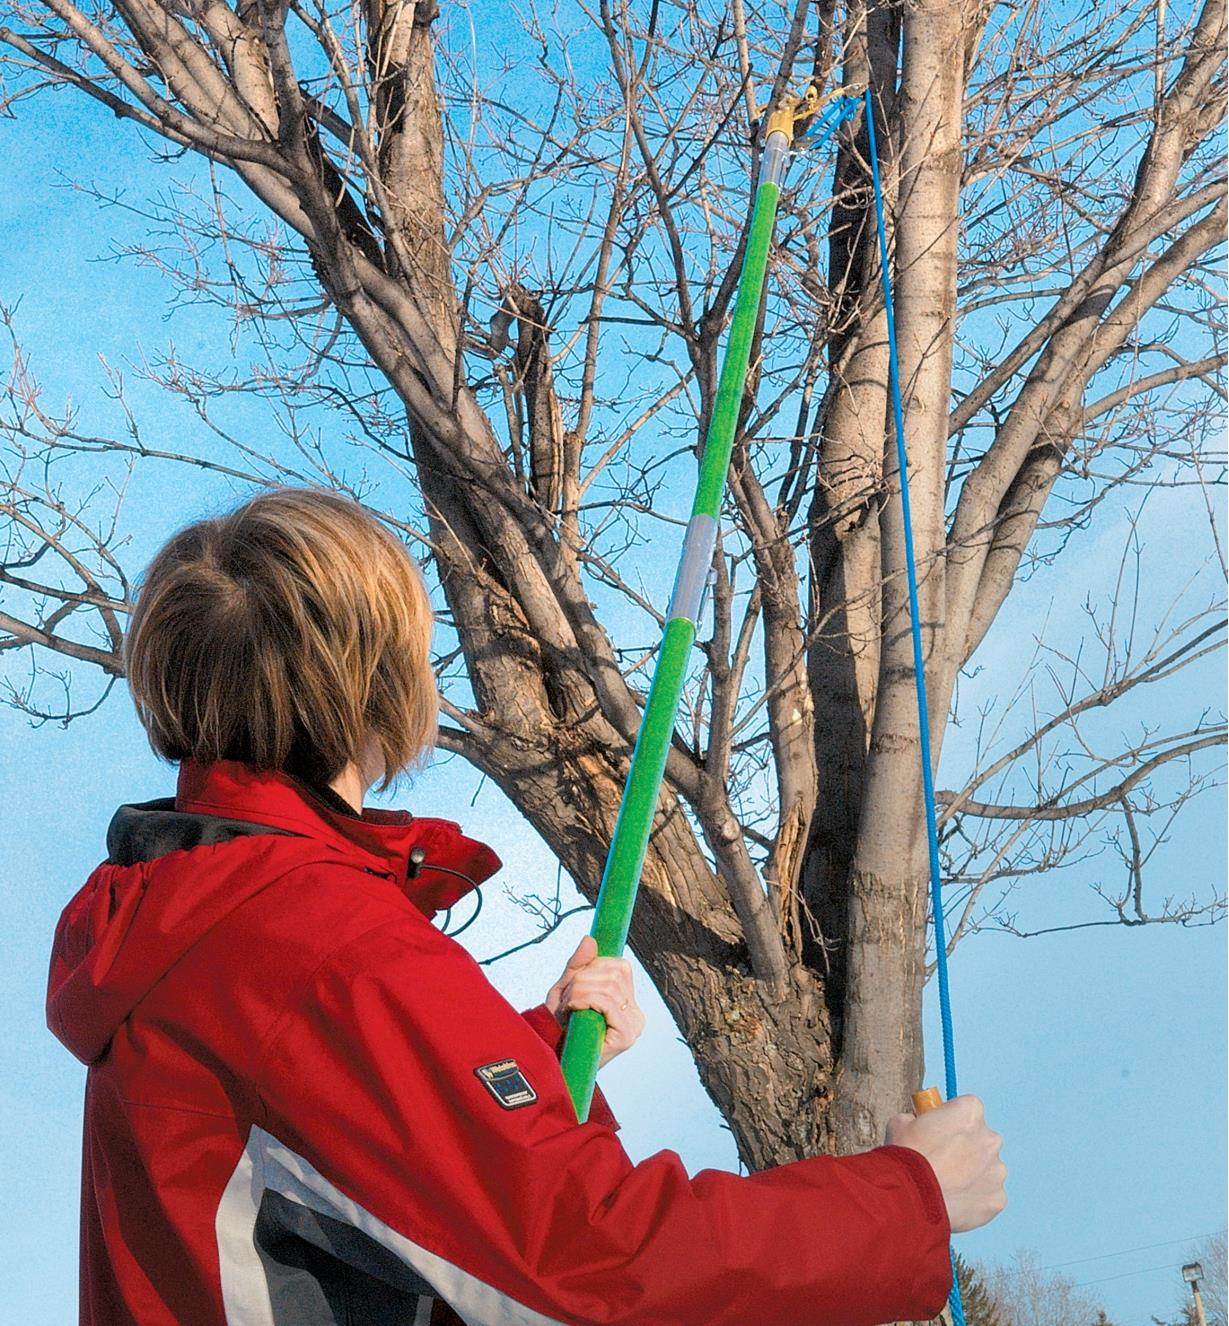 A woman standing on the ground uses the Tree-Pruning Kit to cut a high tree branch